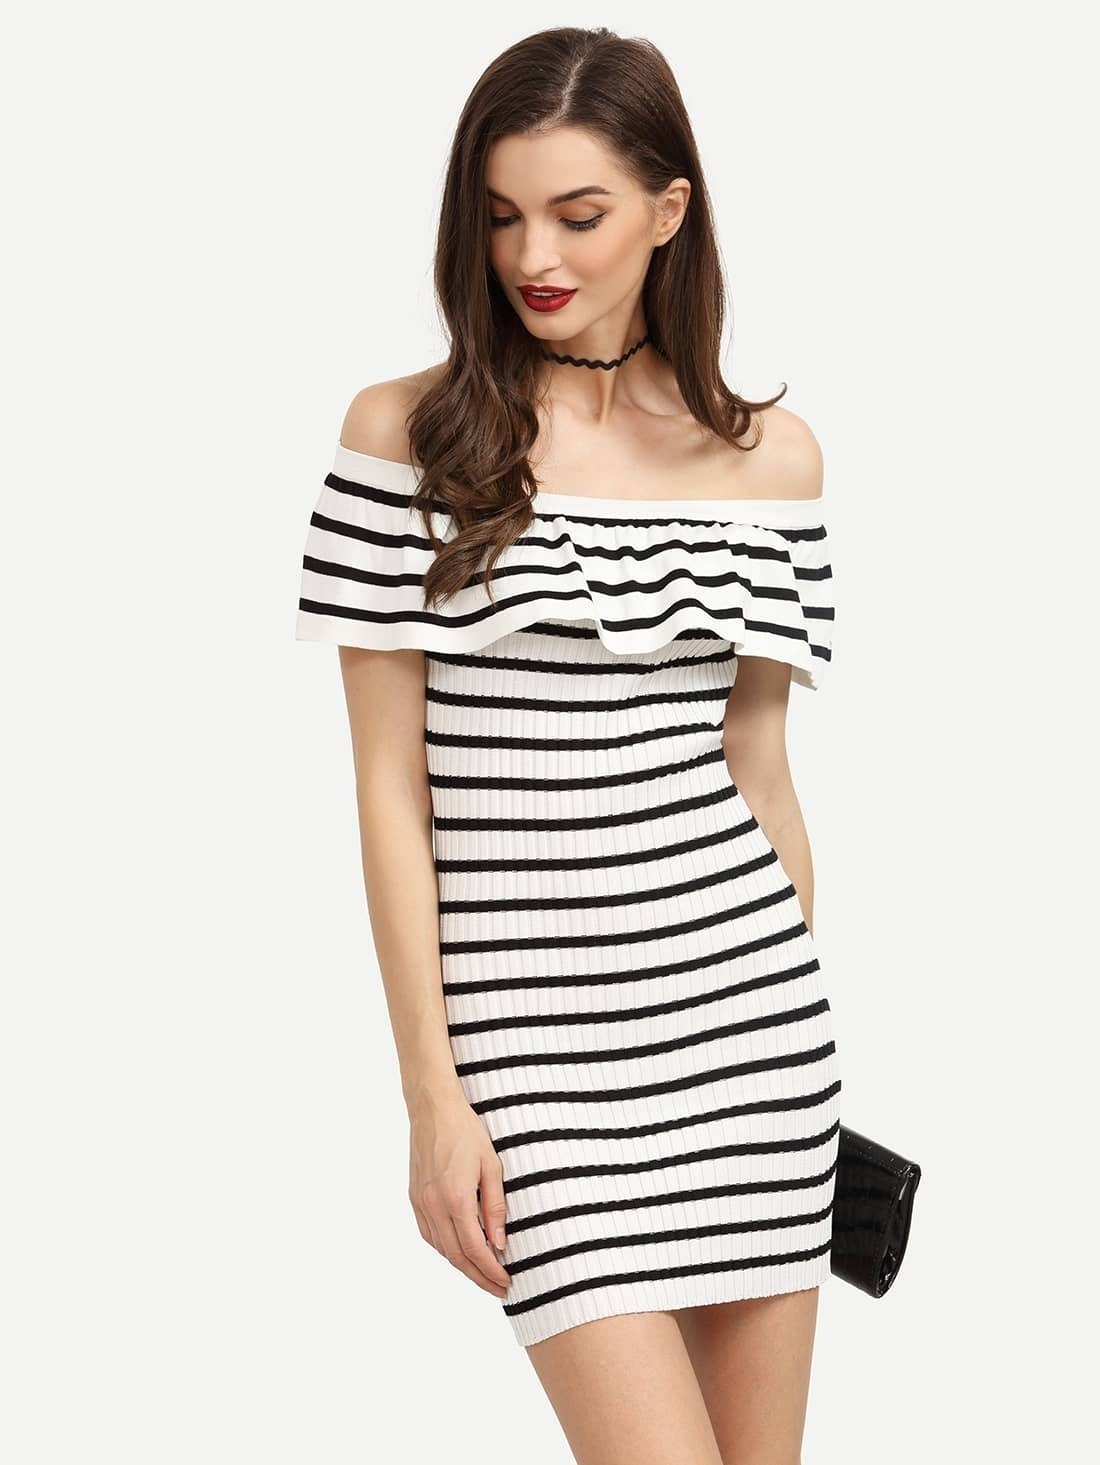 31fca9ca560a1 Black White Striped Ruffled Off The Shoulder Dress EmmaCloth ...